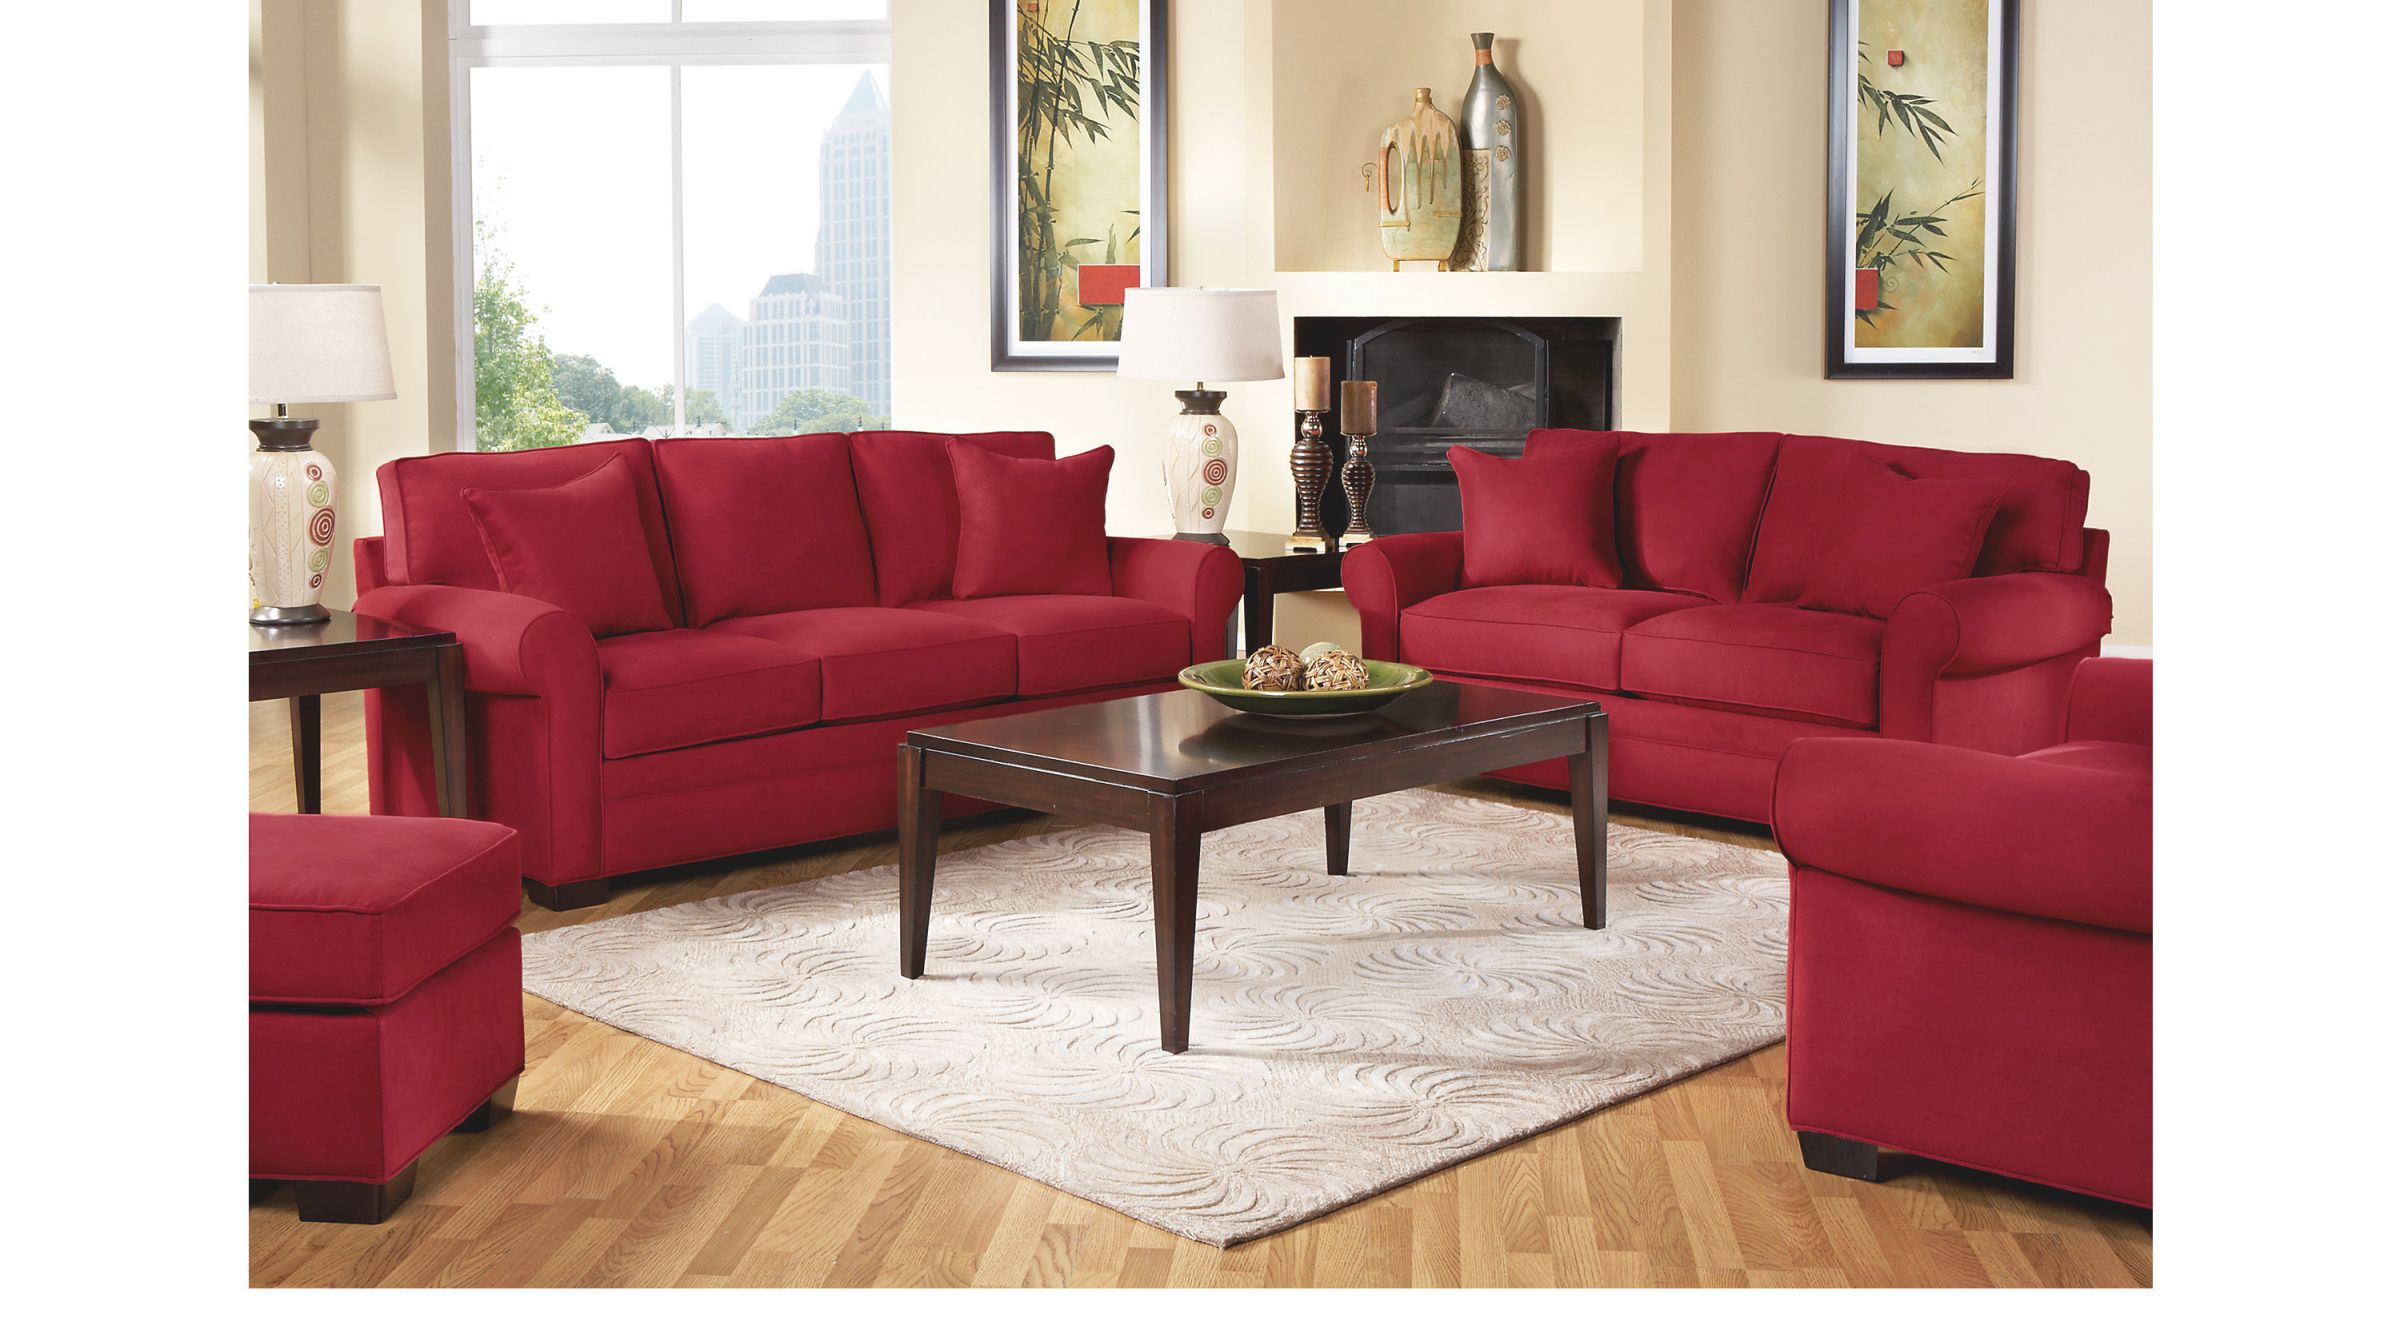 Cindy Crawford Home Bellingham Cardinal 7 Pc Living Room in Brown And Red Living Room